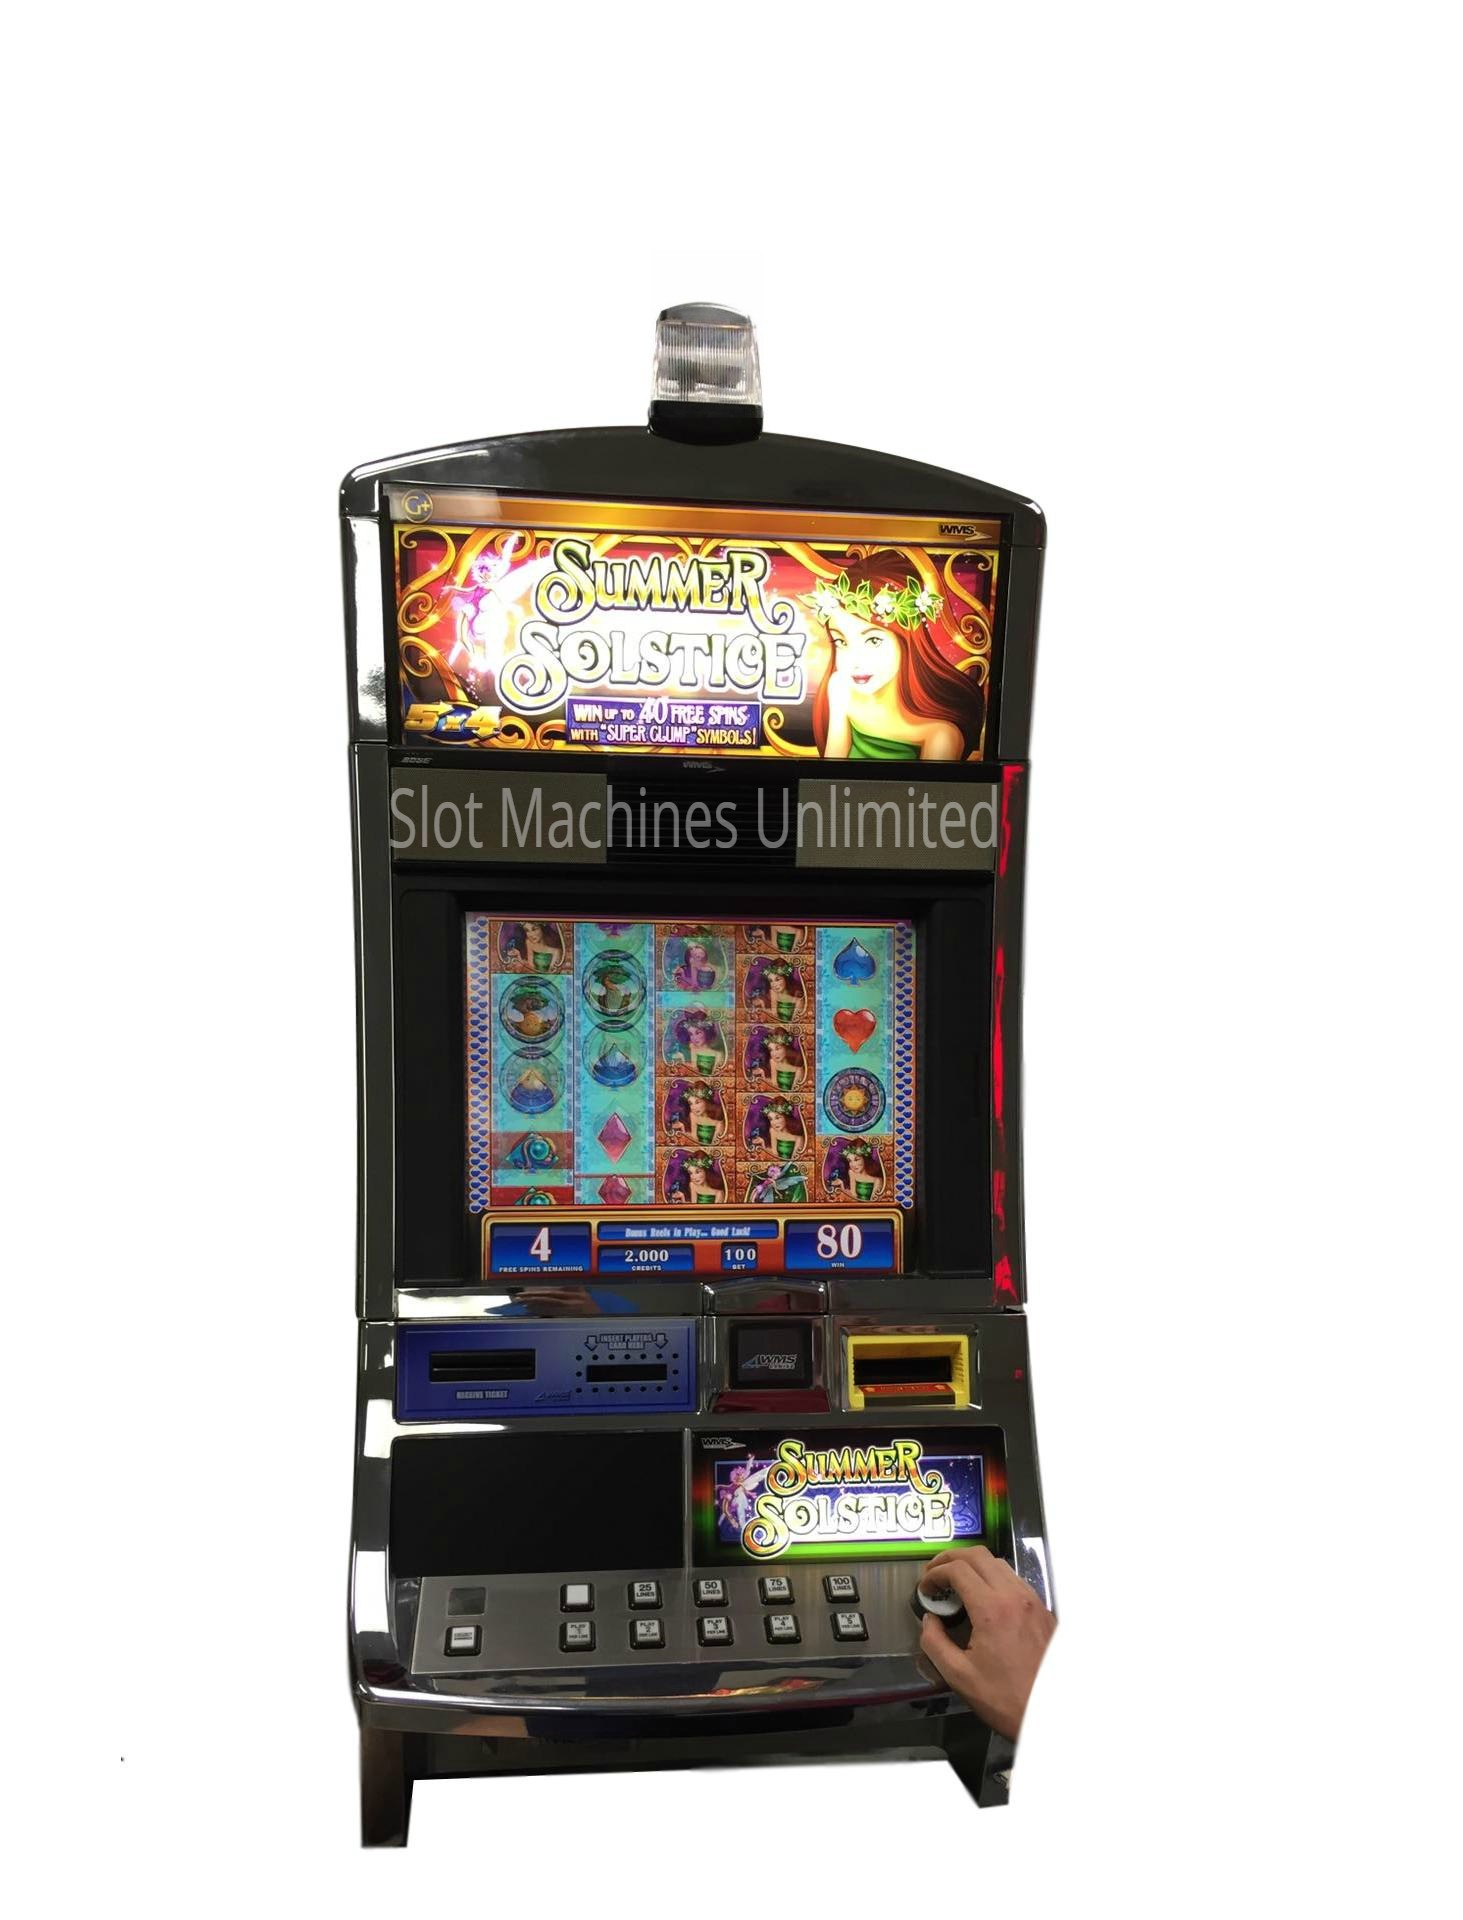 Summer Solstice Slot Machine